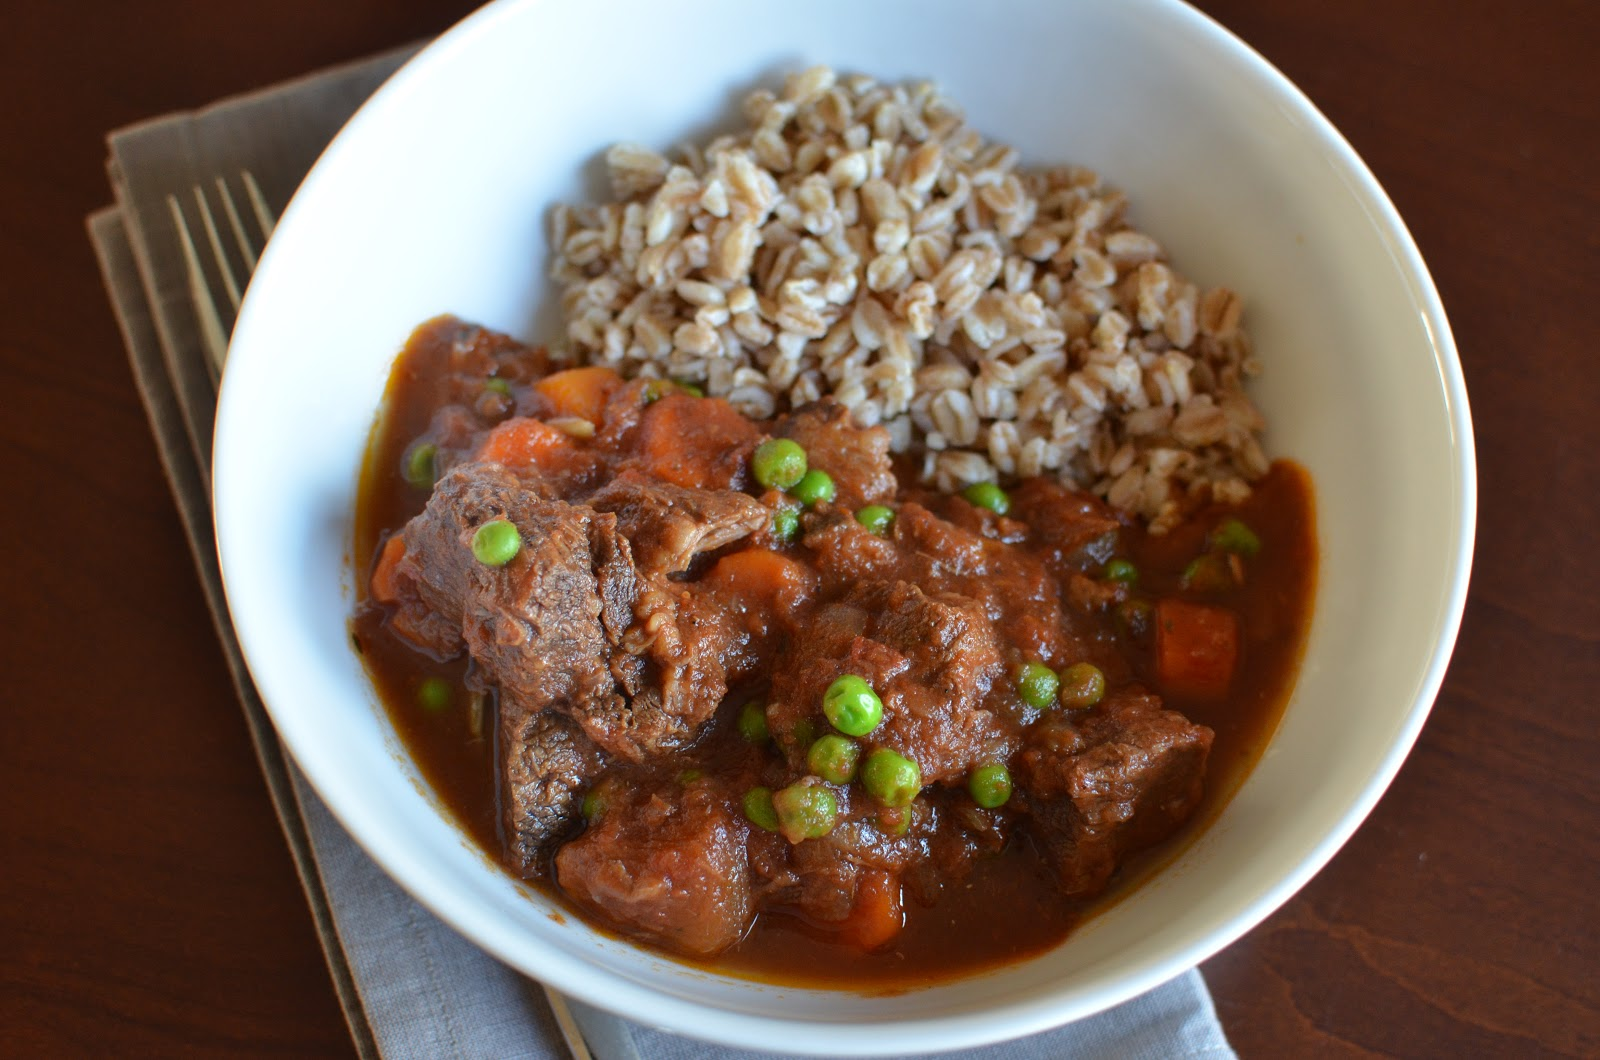 Beef and tomato stew made in the slow cooker, served with farro